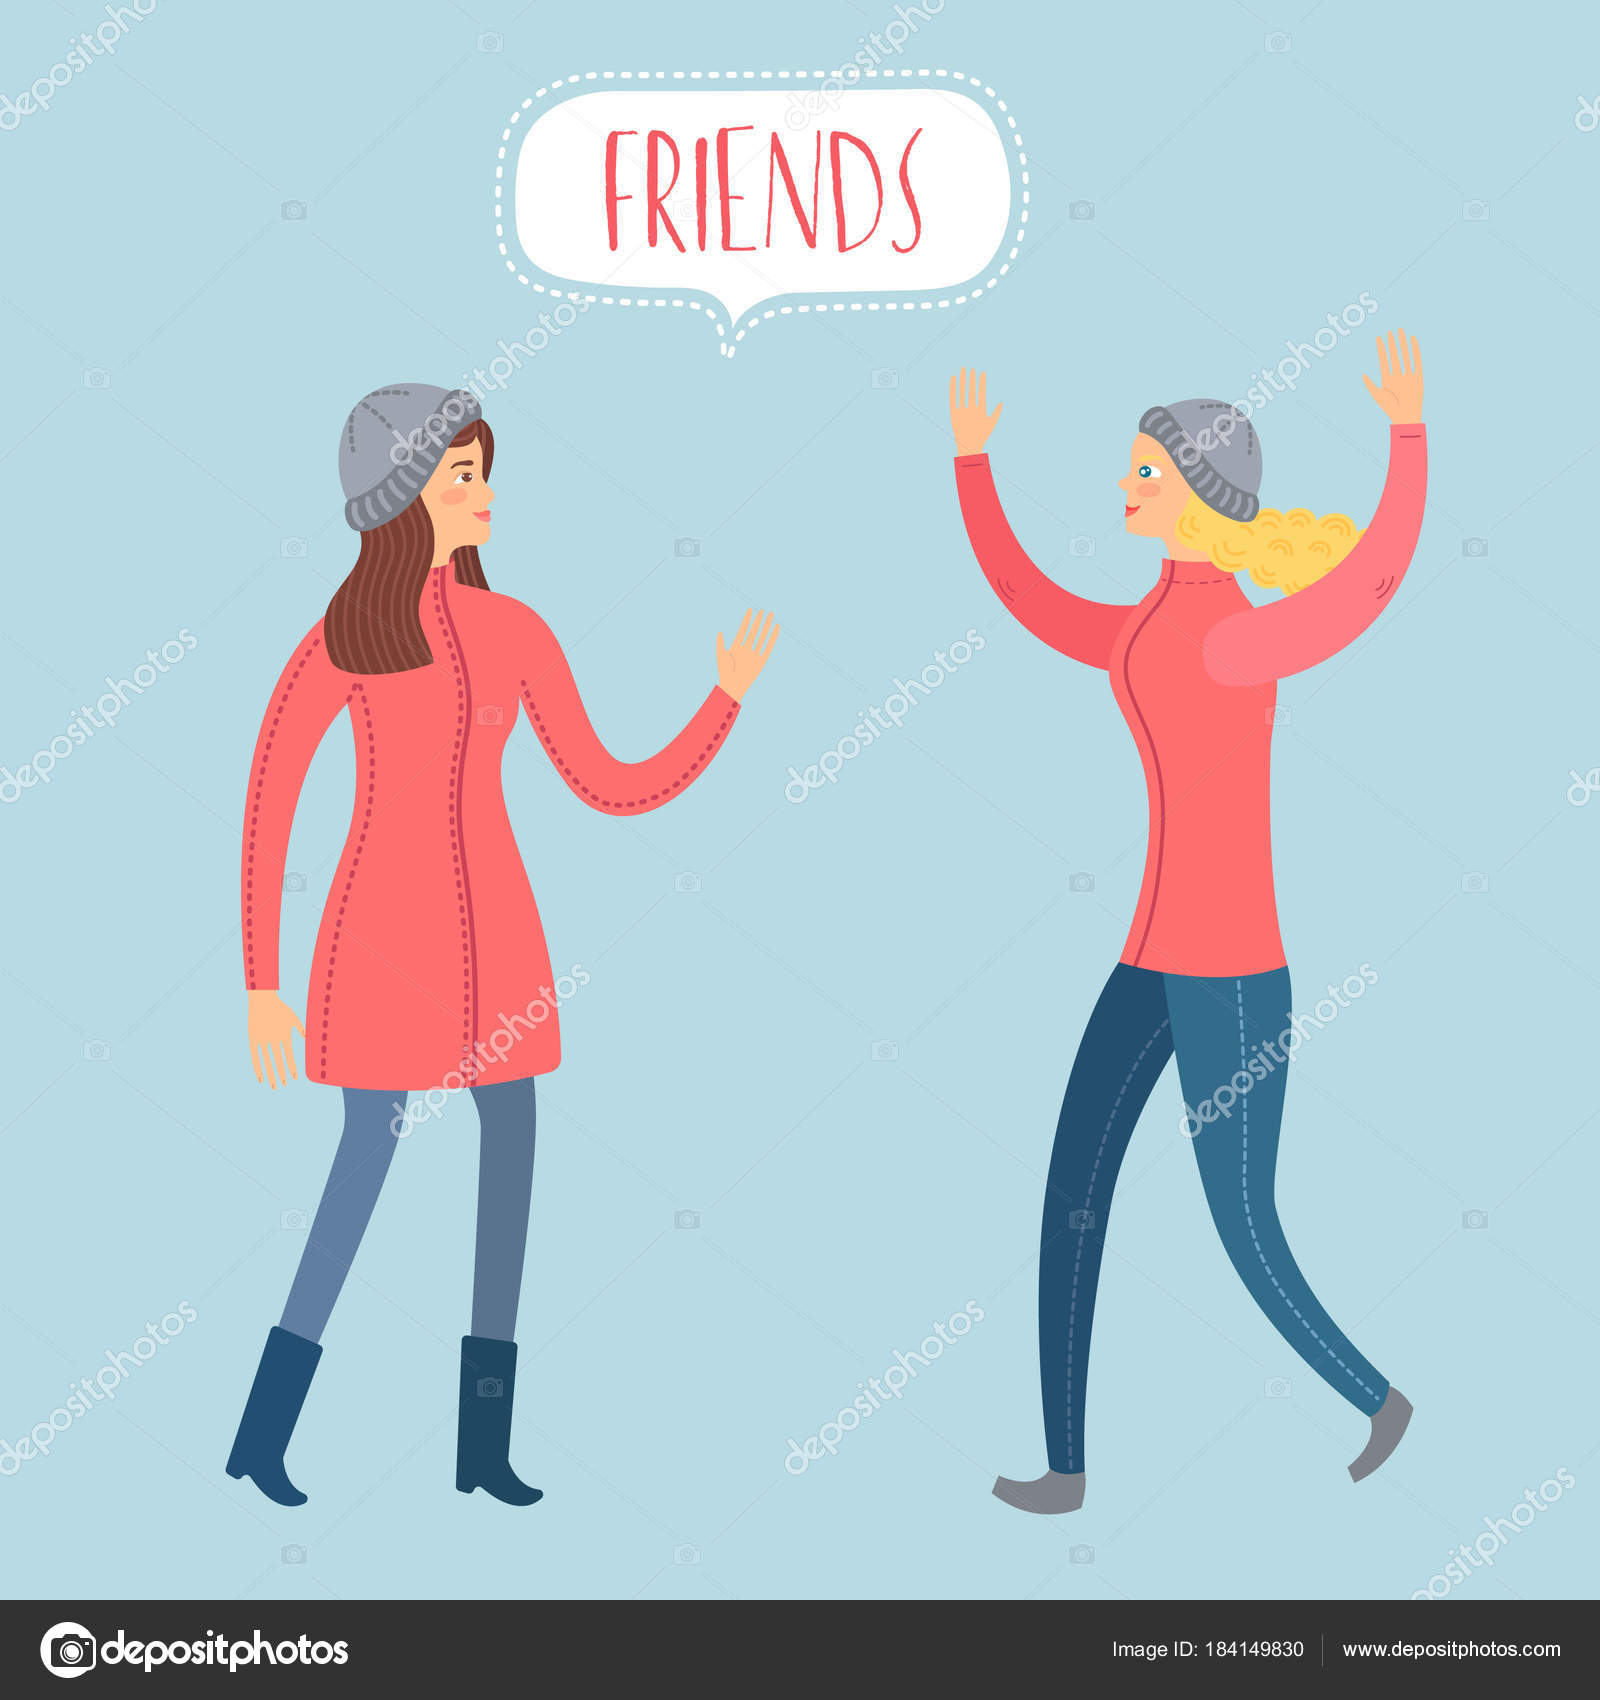 Meeting Two Friends Girls Cartoon Colorful Illustration Unity